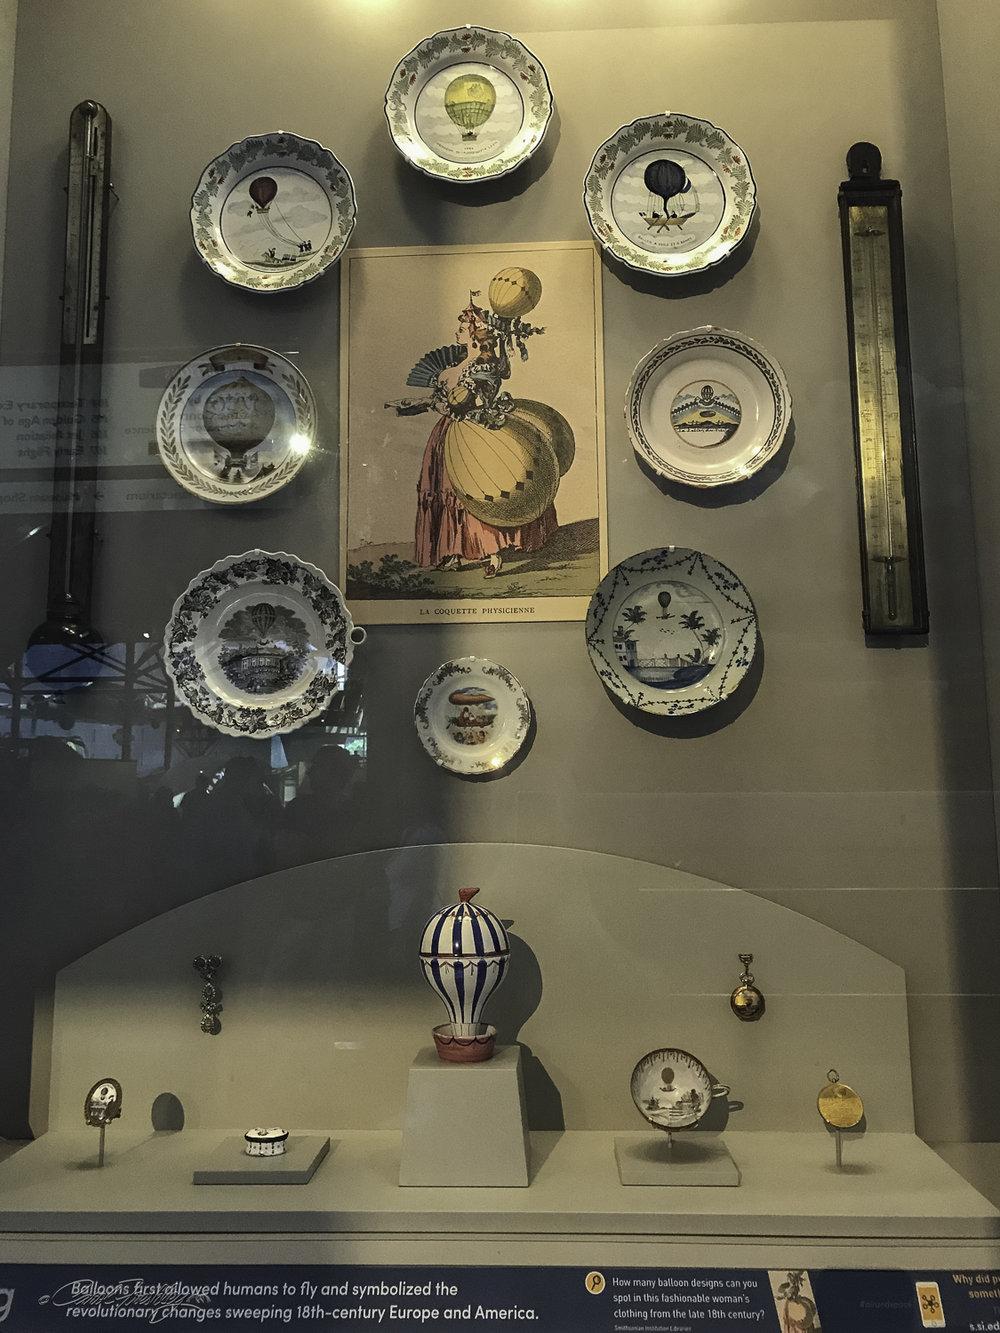 According to the sign next to this display, balloon-inspired hair and clothing were all the rage in the final years of the 18th century. Artisans created jewelry, hats, needle cases, snuff boxes, wall hangings, clocks, furniture and much more to attract they eye and empty the pocketbook of customers.